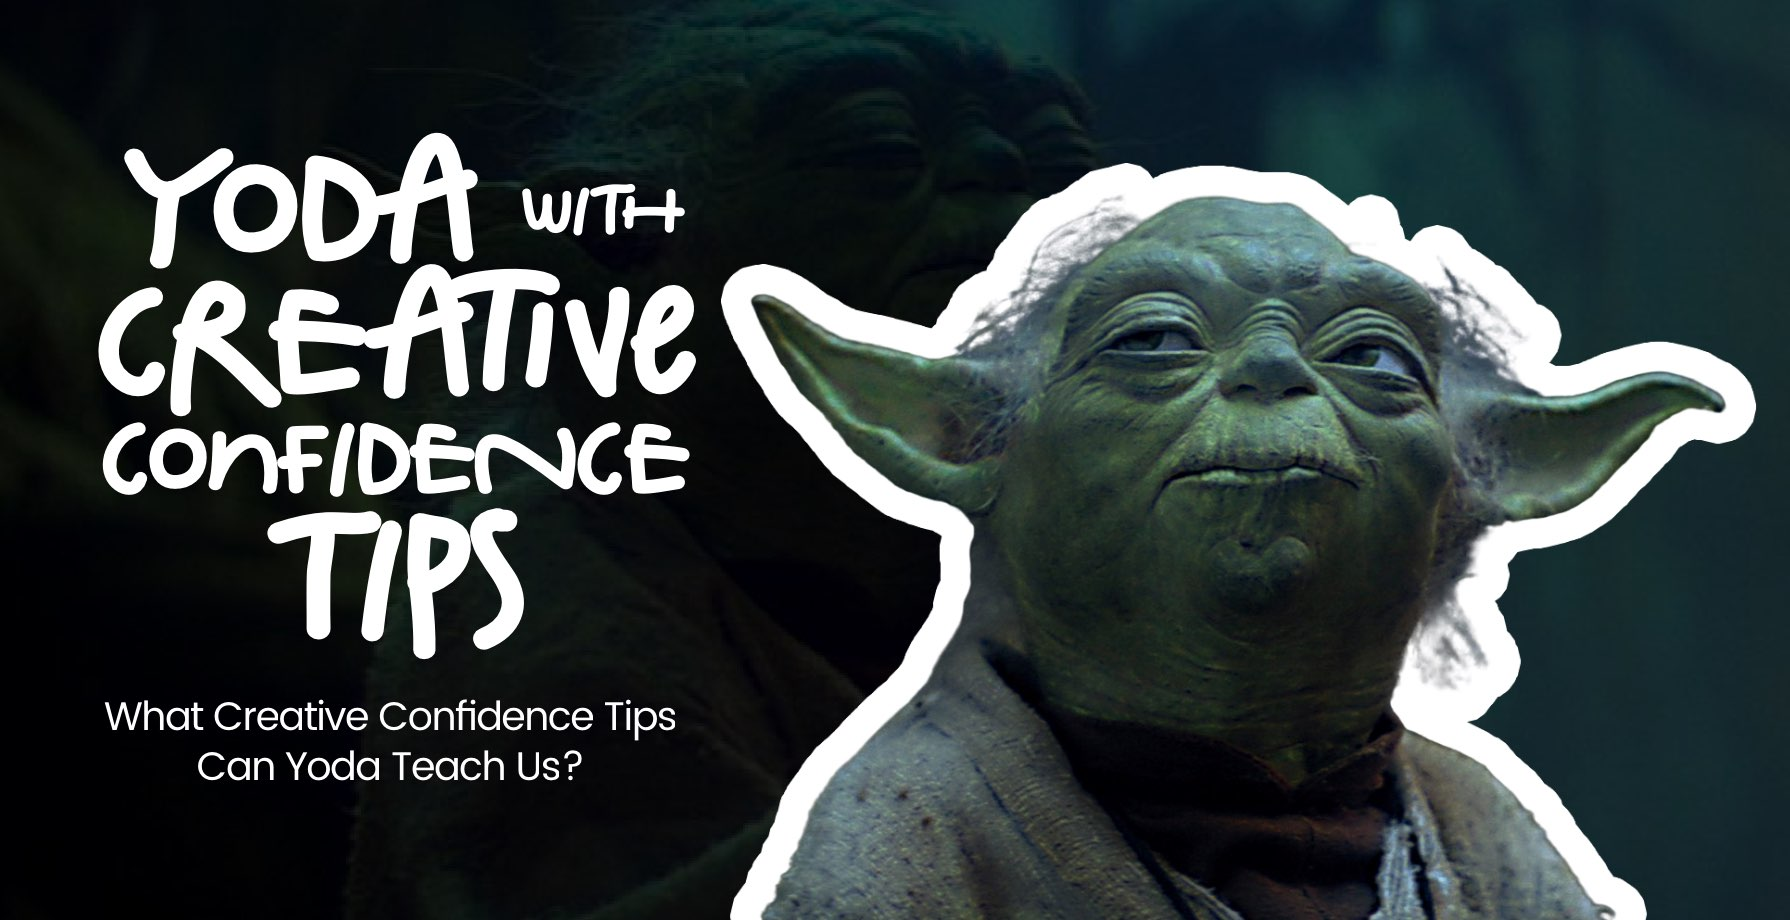 What Creative Confidence Tips Can Yoda Teach Us